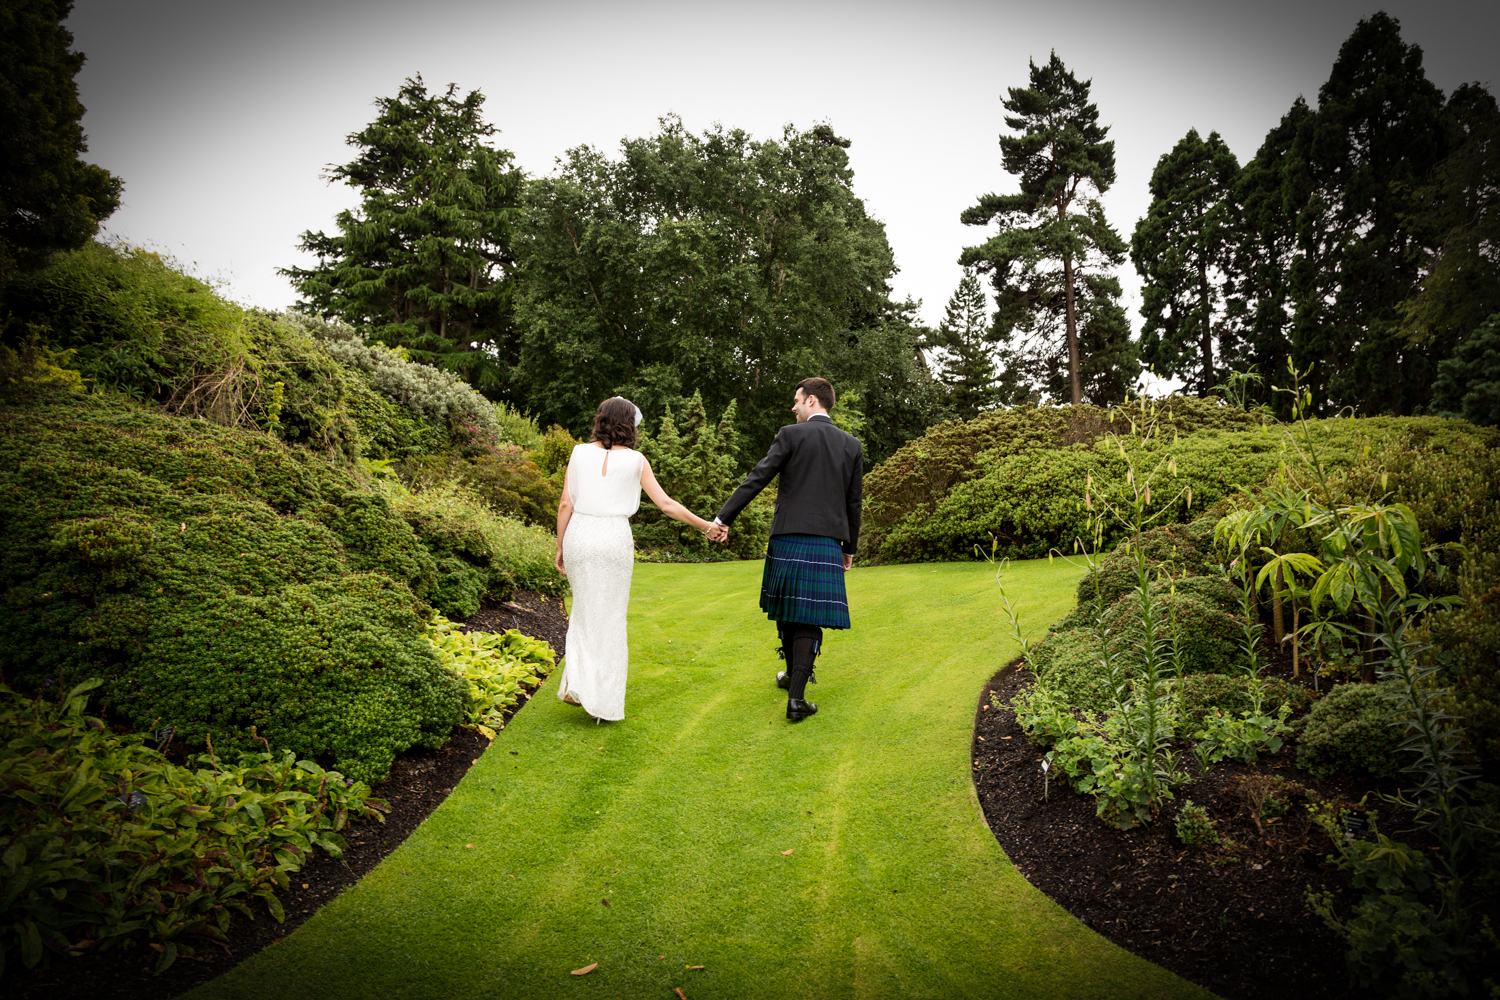 psd-photography-orla-iain-wedding, unique wedding venue, royal botanic gardens edinburgh